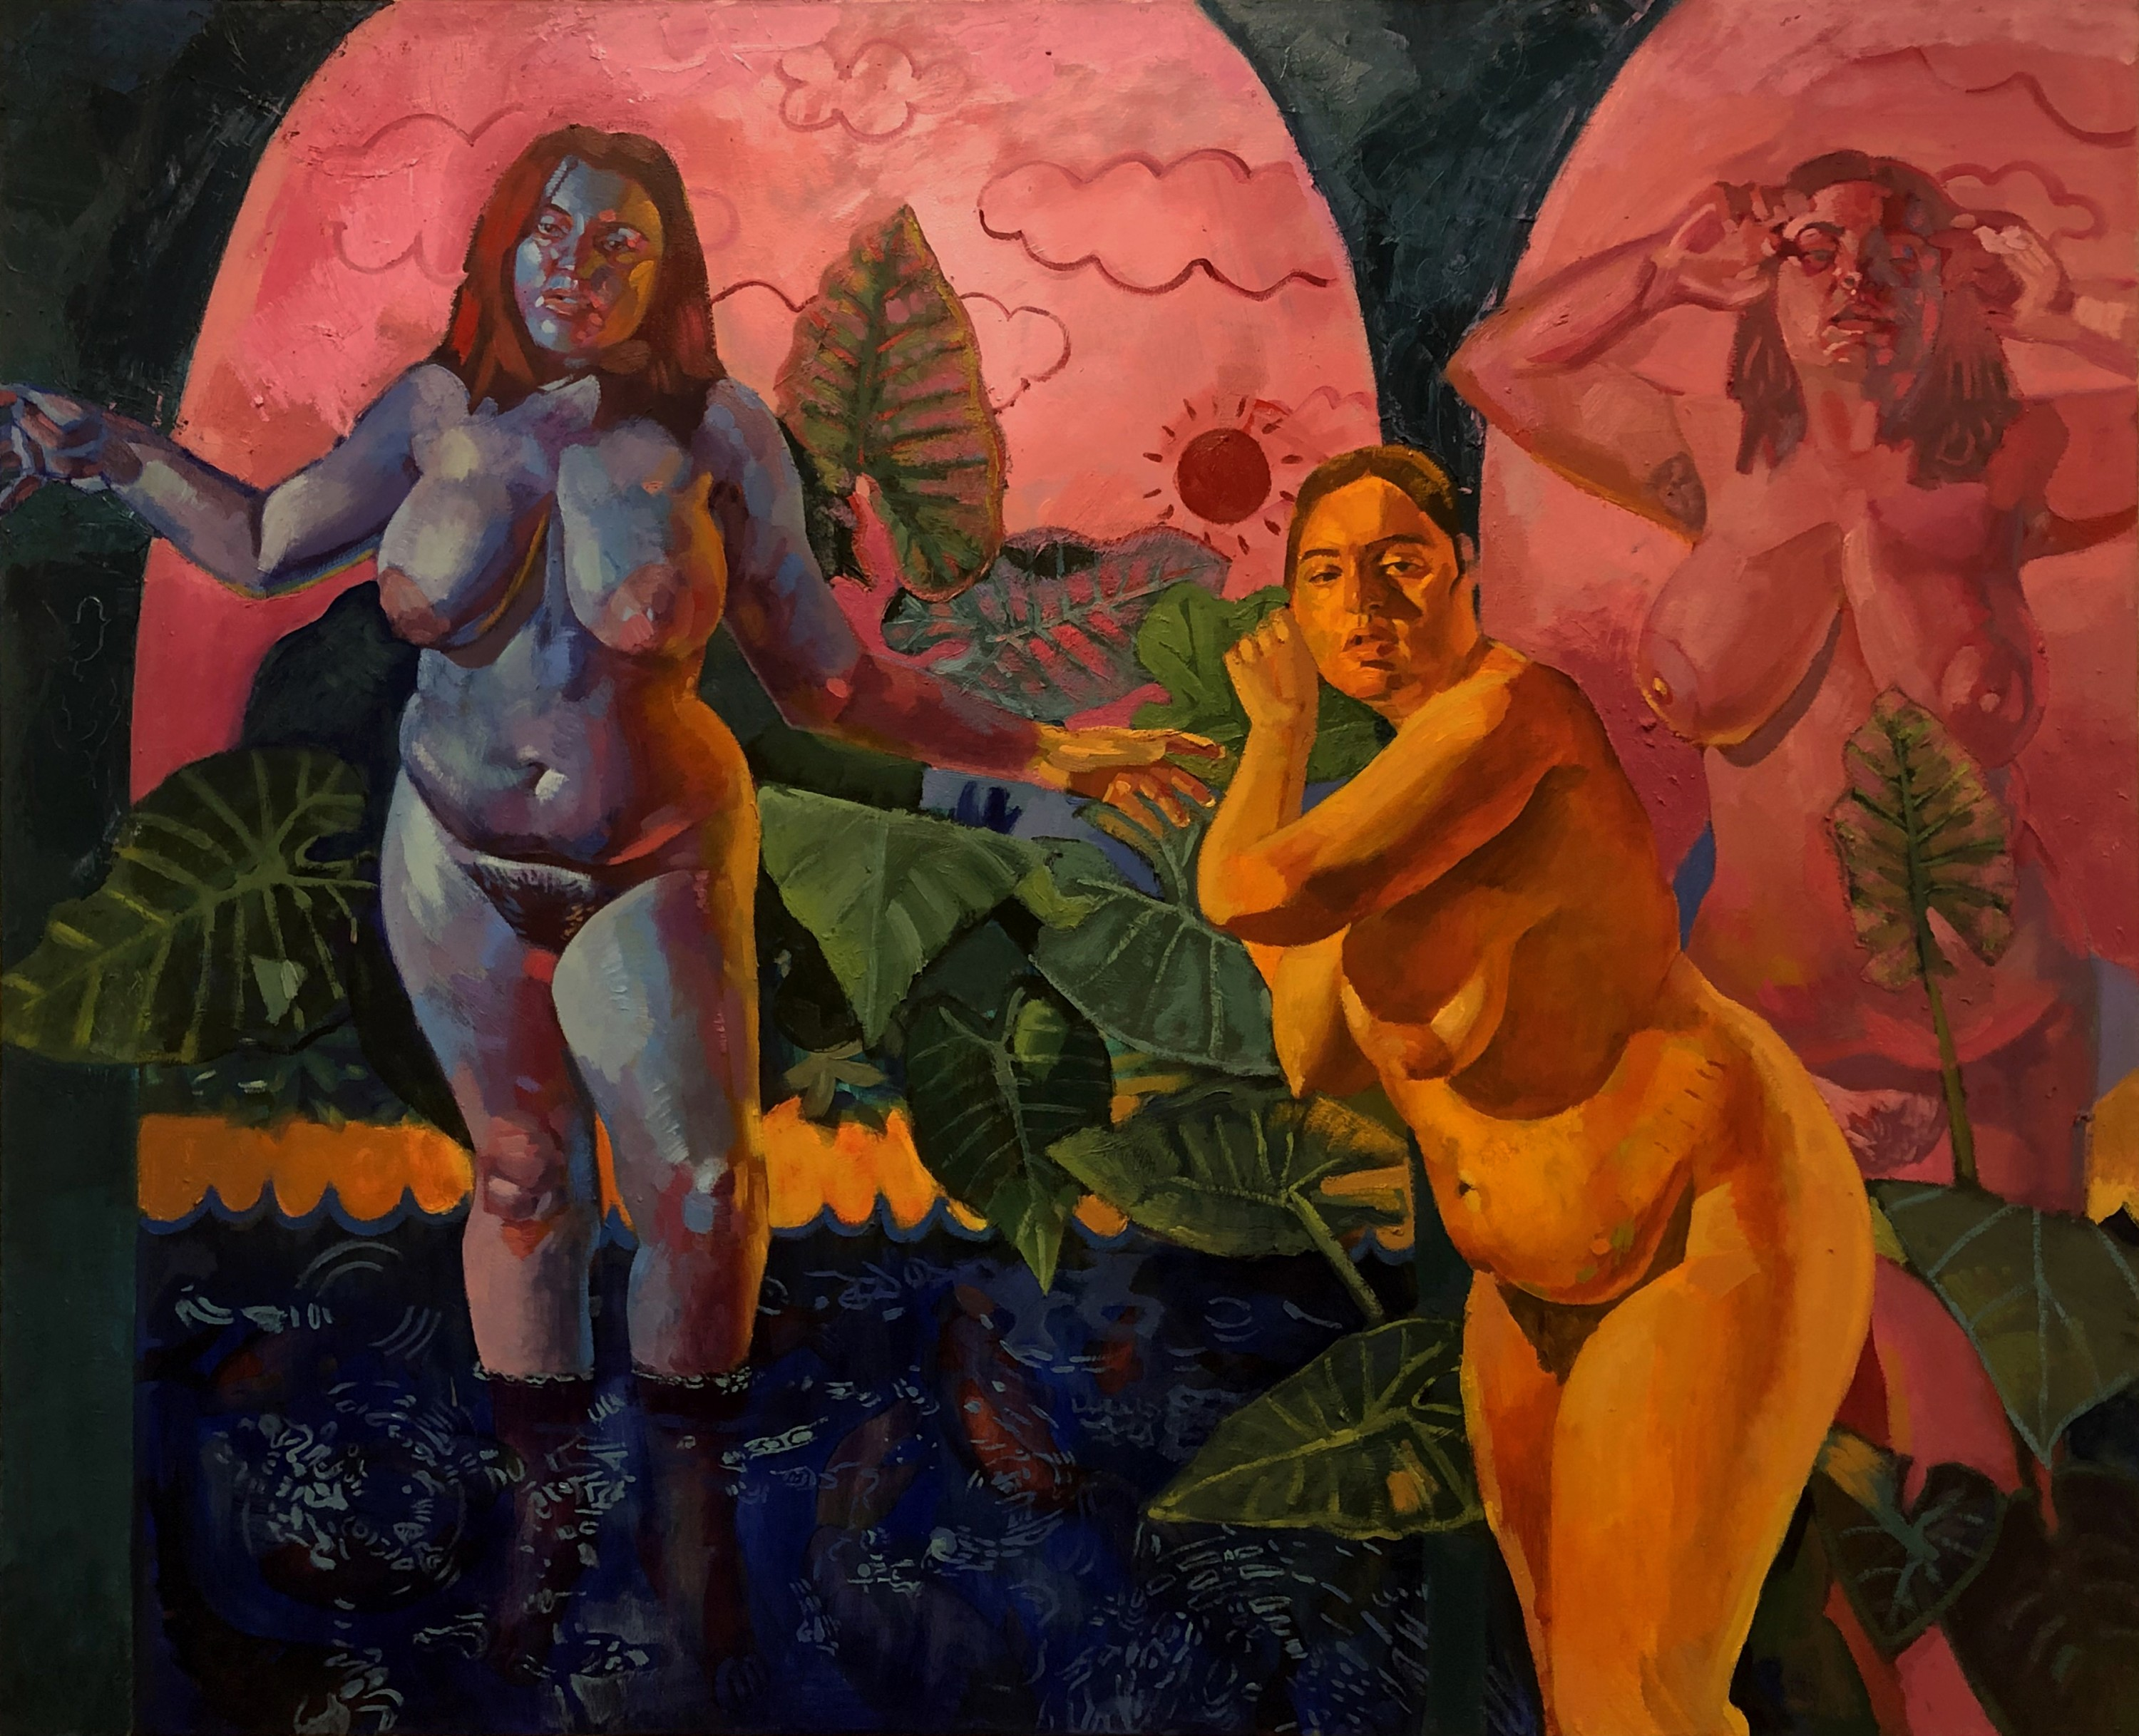 Three figures stand together in water, a blue figure to the left has her arms extended, a yellow figure stands in the center, and a pink figure on the right. Each of the figures is looking directly at the viewer. The figures occupy the foreground and the